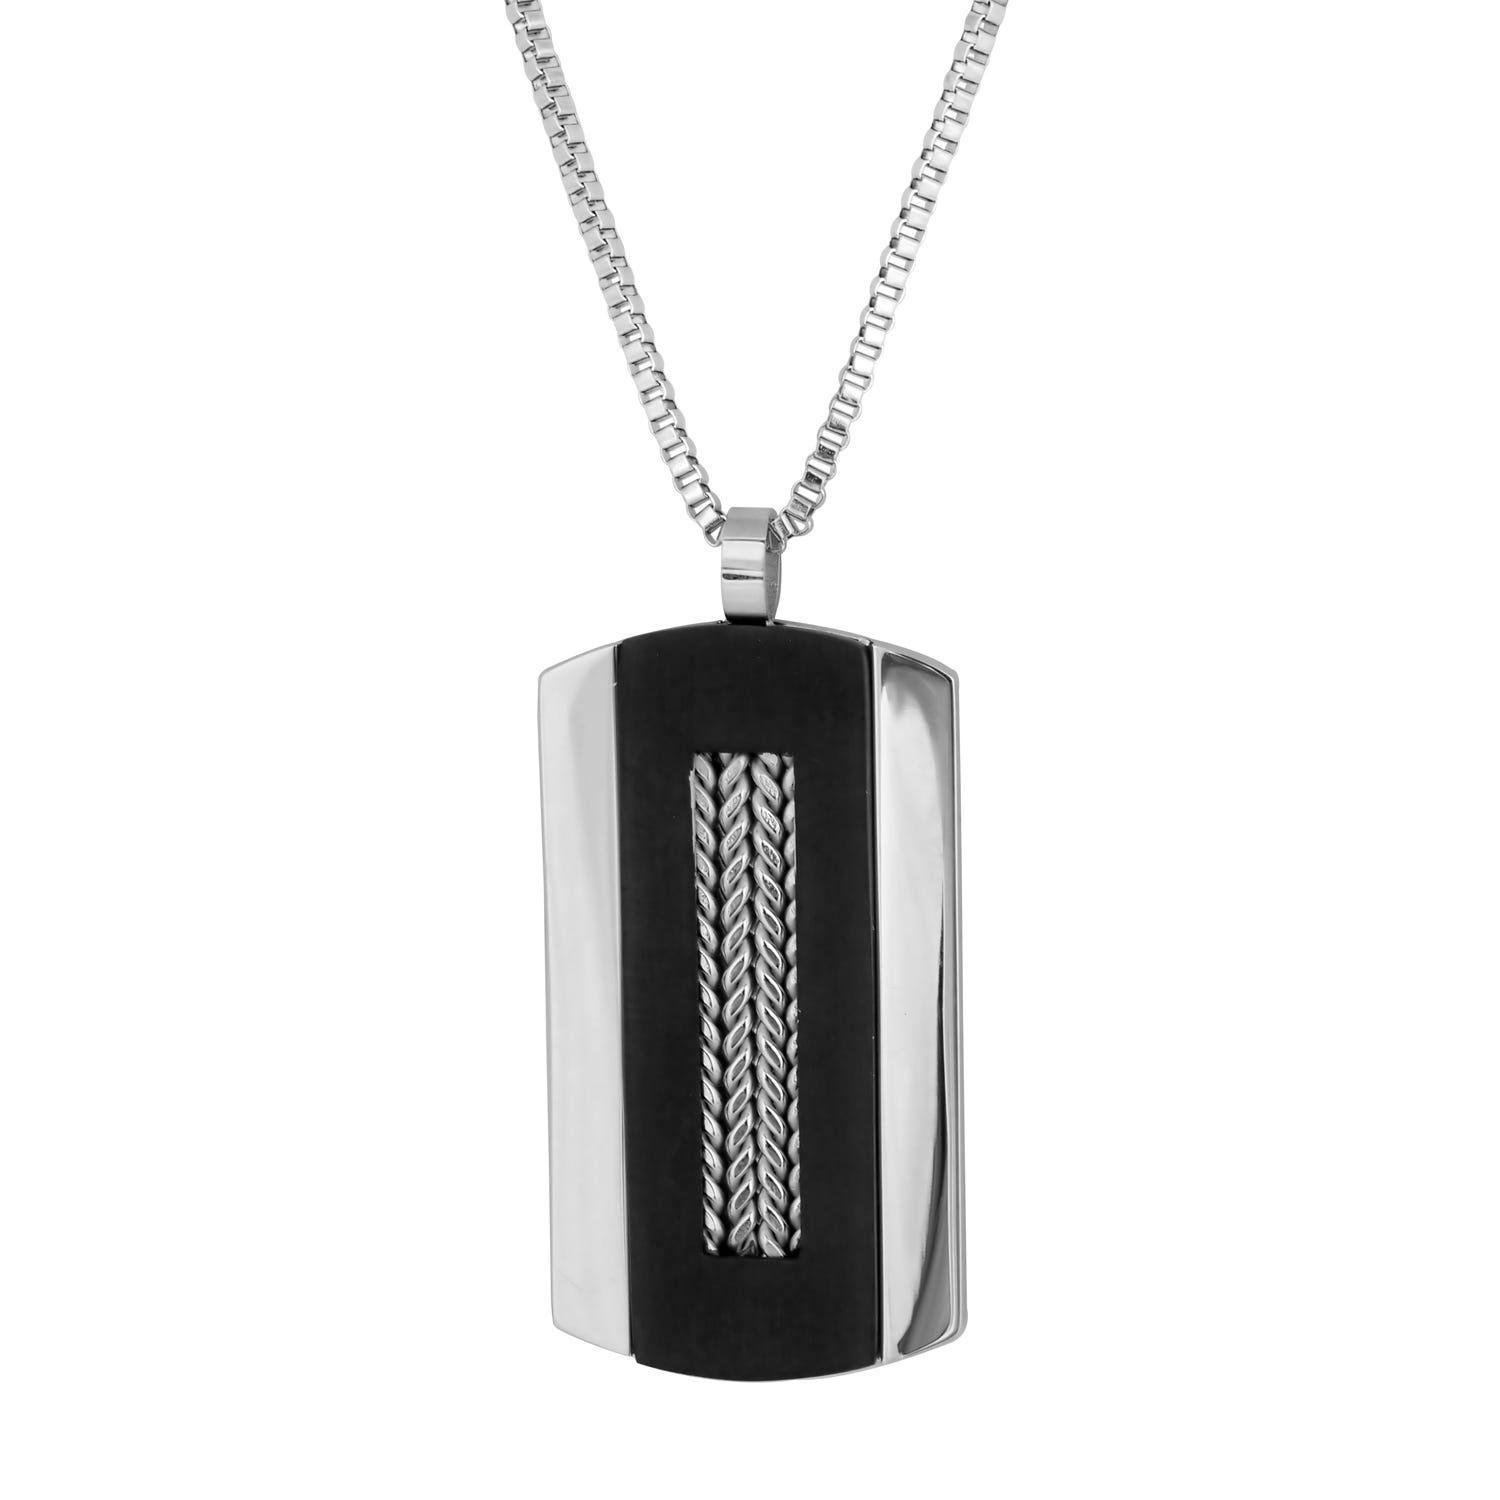 Black Plated Dog Tag Fashion Necklace in Stainless Steel